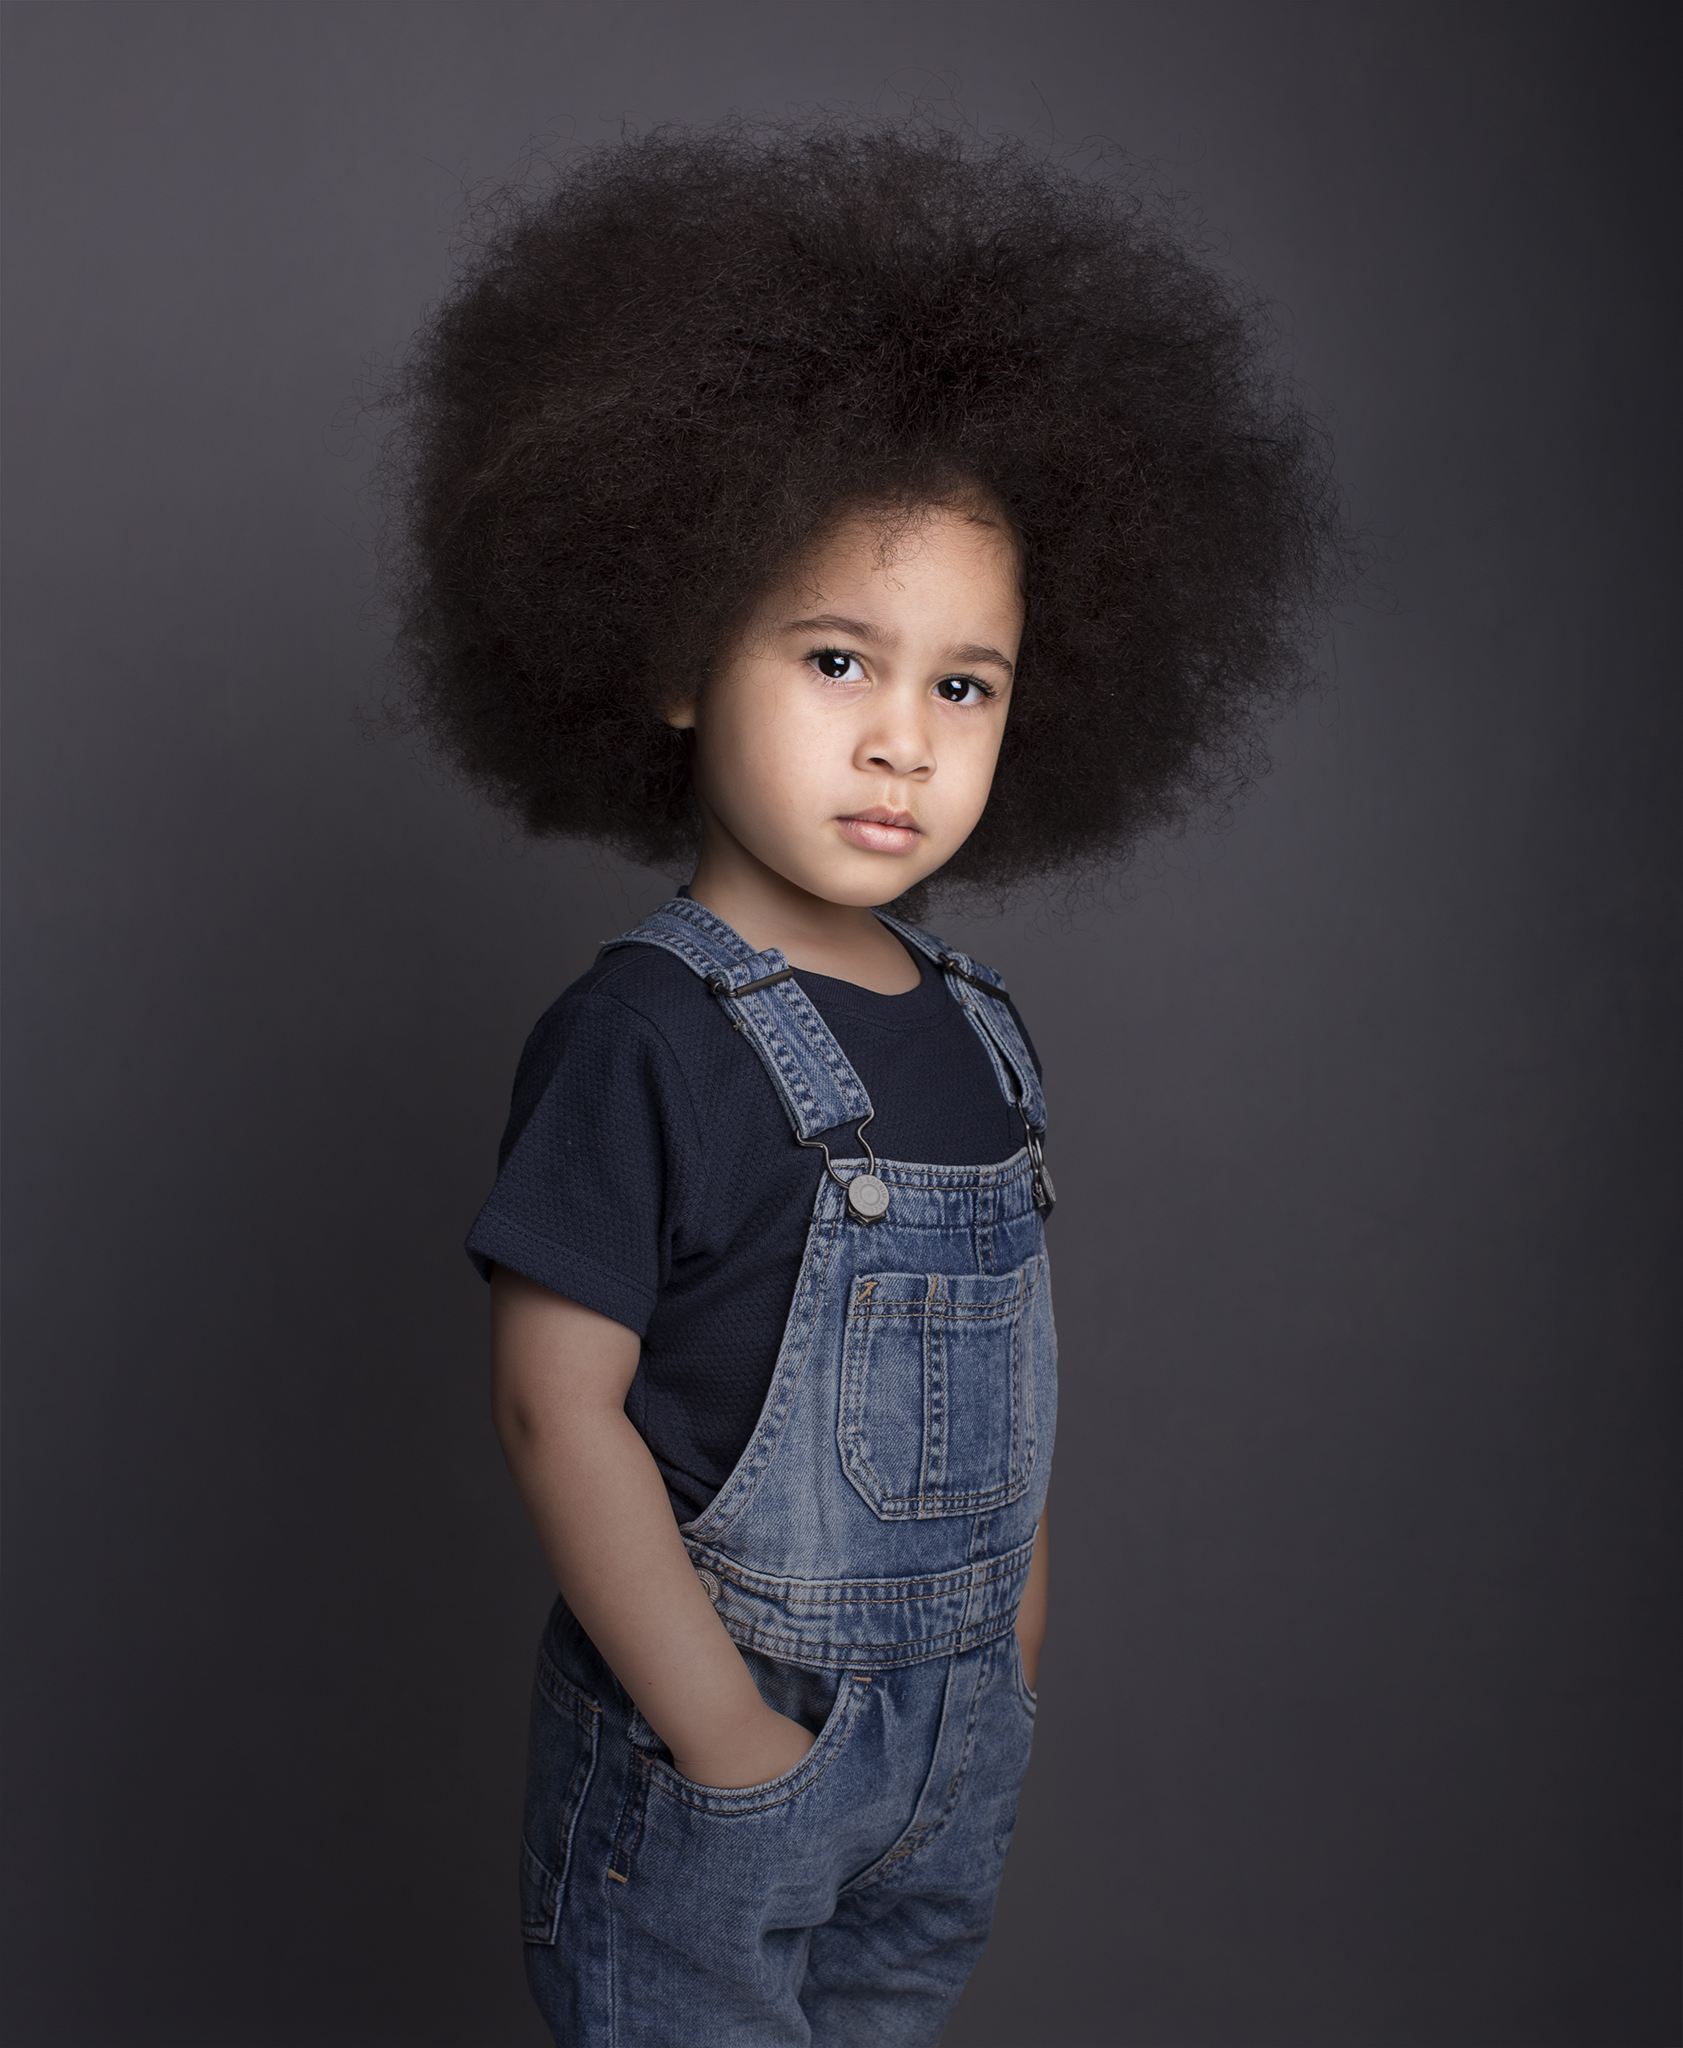 Elizabethg_fineart_portrait_photographer_kingslangley_hertfordshire_pascal_kidslondon_8elite_002.jpg